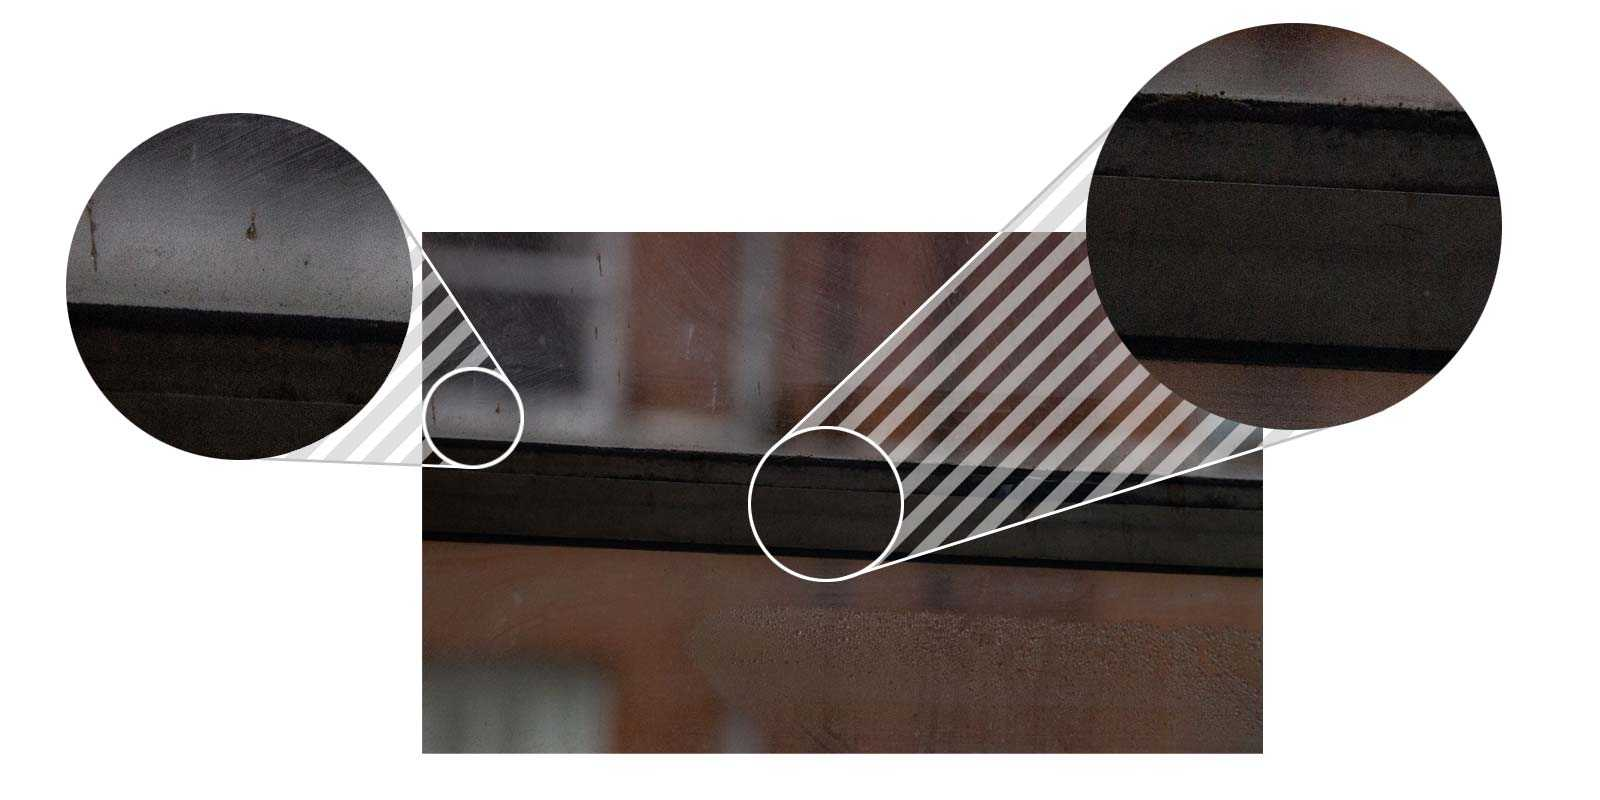 Test photo of a window with two sections magnified, one from the centre showing clean lines and no blurring; the other from the edge, which shows some minor fuzziness on sharp edges.